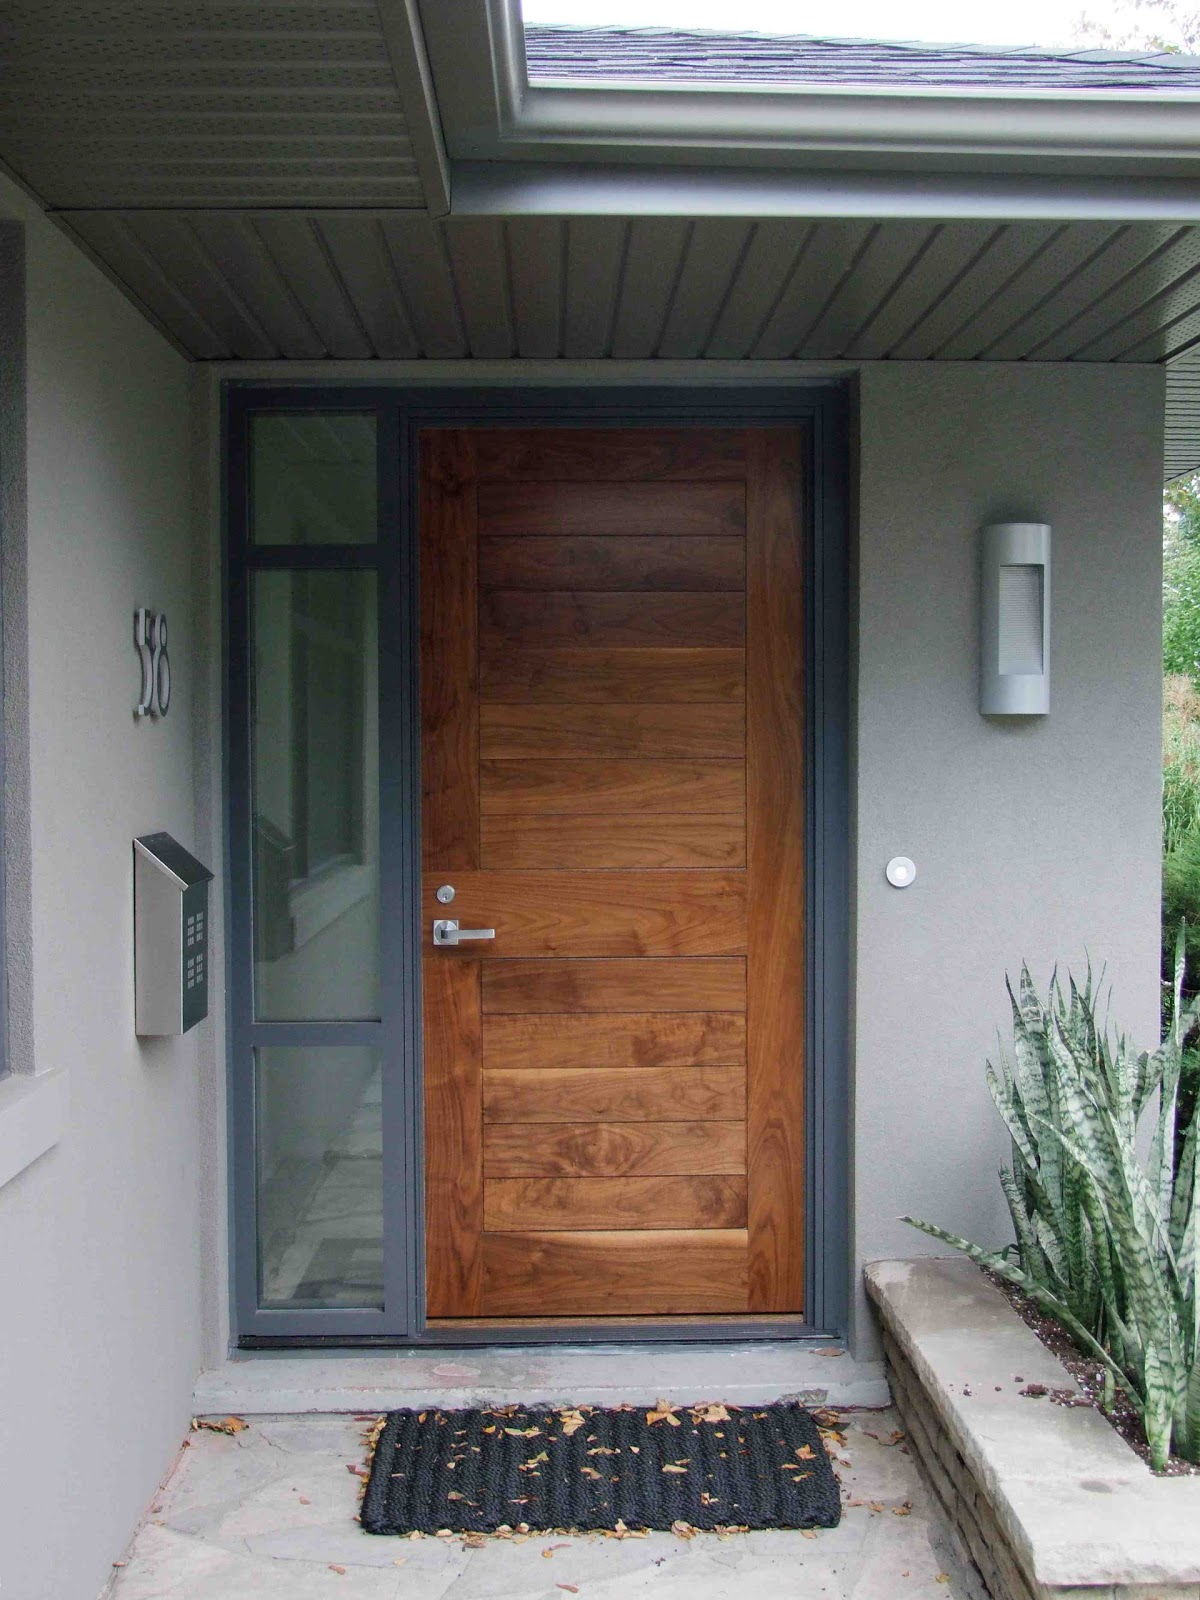 Creed 70 39 s bungalow makes a modern impression for Exterior wooden door designs